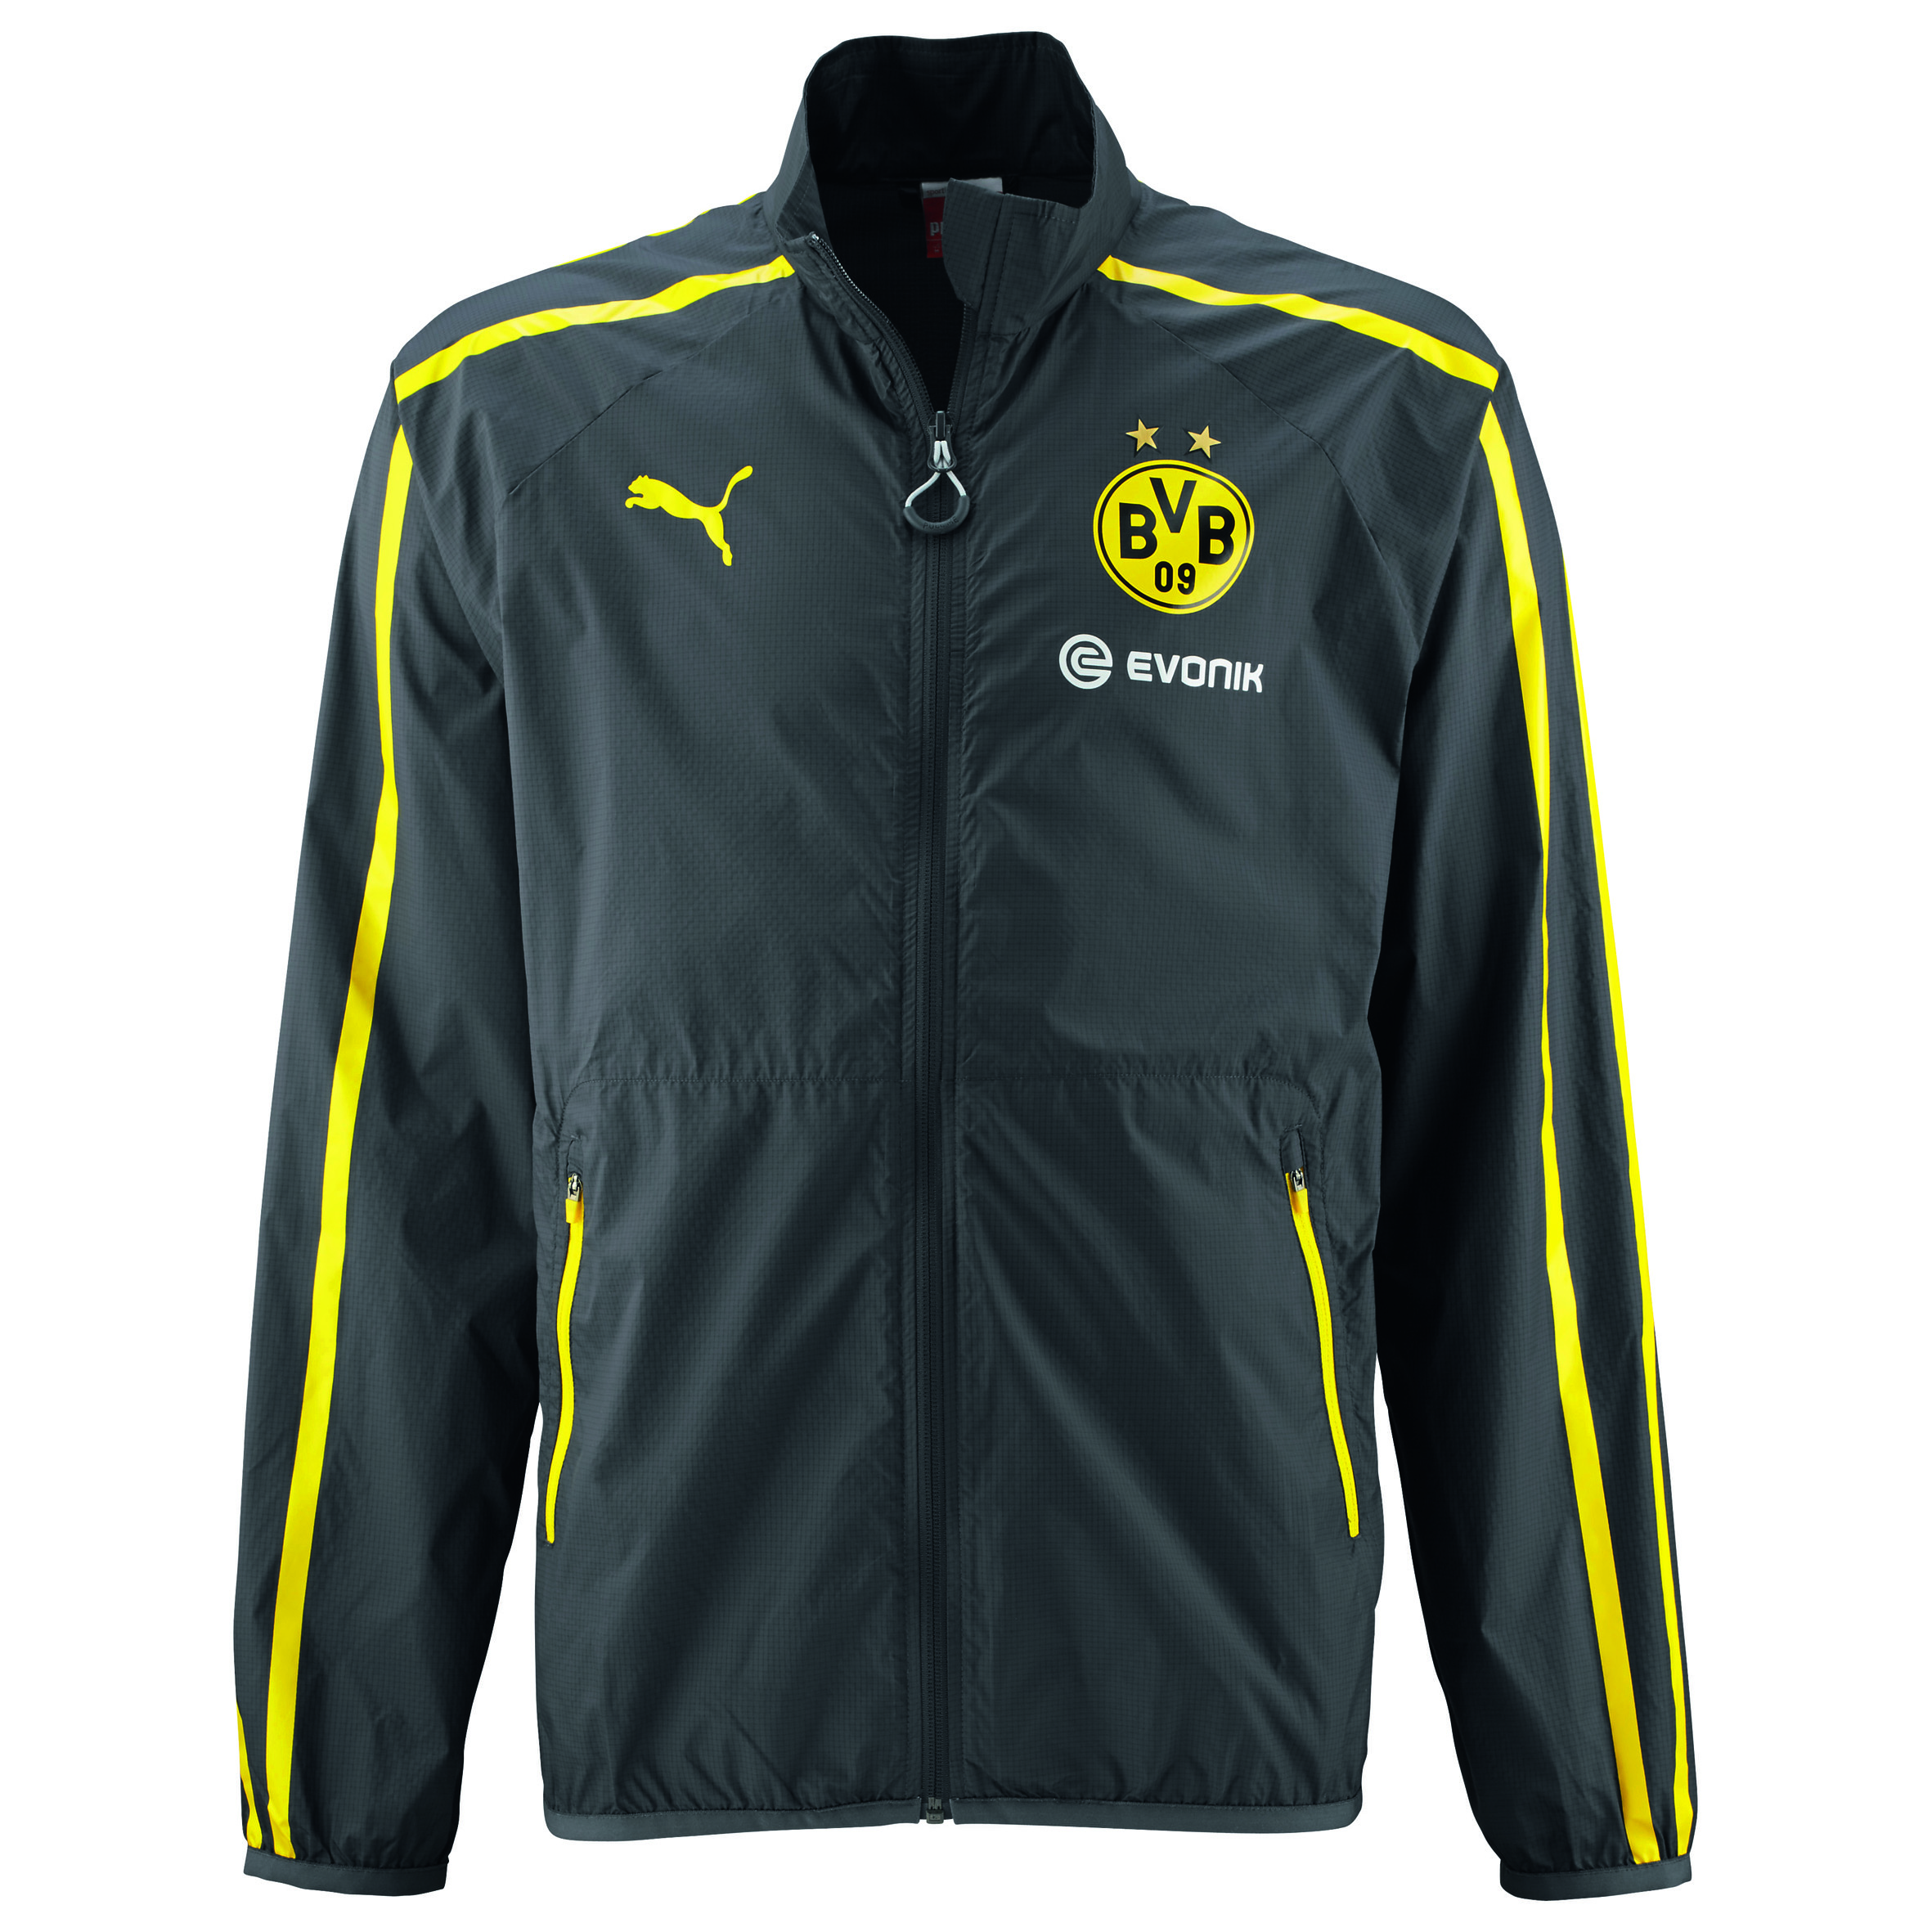 BVB Anthem Jacket